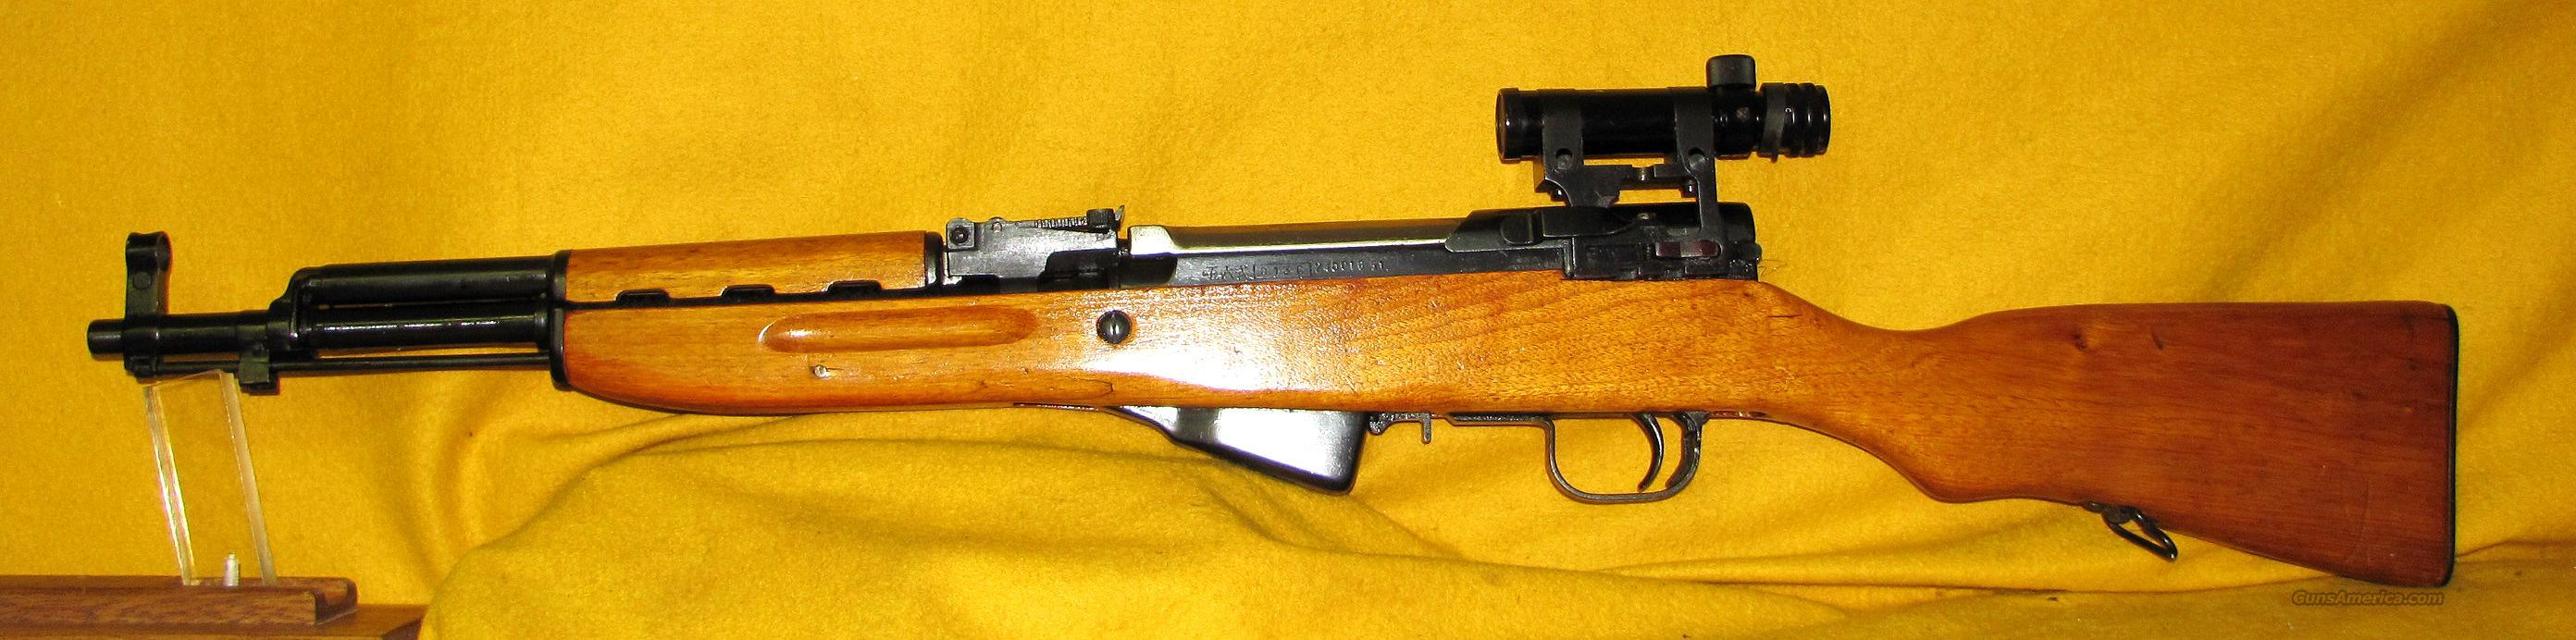 CHINESE SKS ( CARBINE )  Guns > Rifles > SKS Rifles